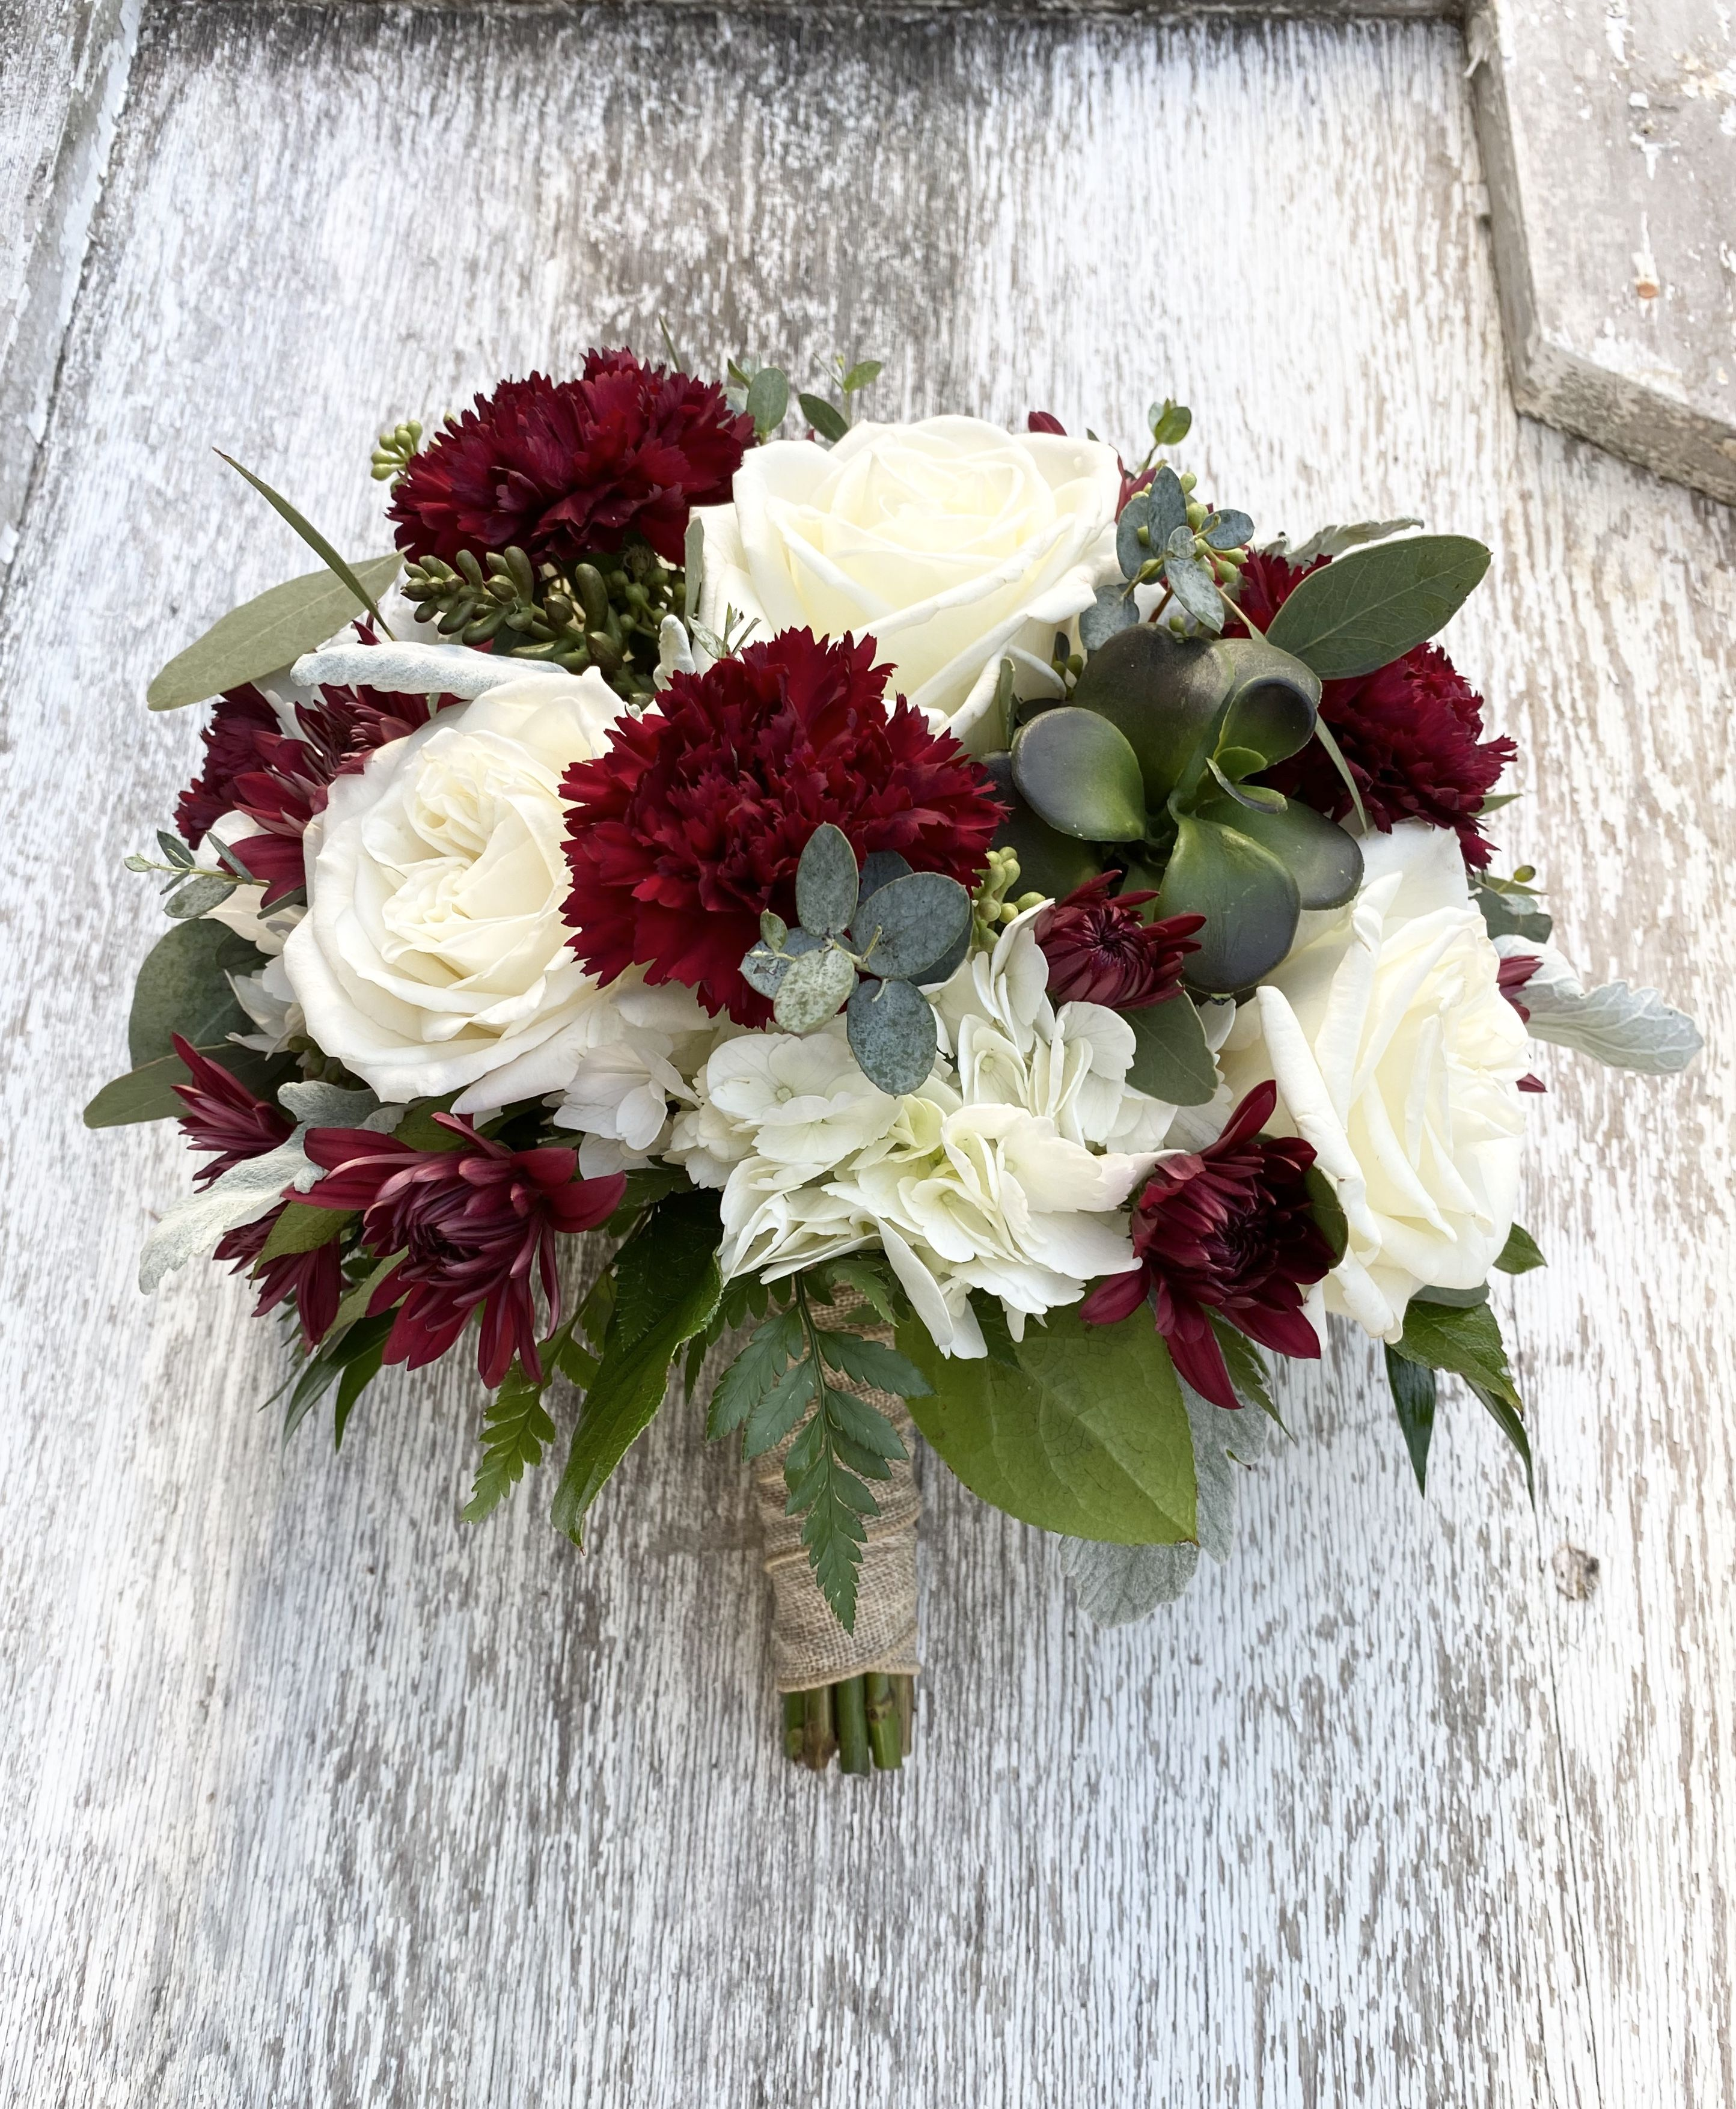 Burgundy And White Bridesmaid Bouquet In 2020 Bridesmaid Bouquet White Carnation Bridal Bouquet Bridesmaid Flowers